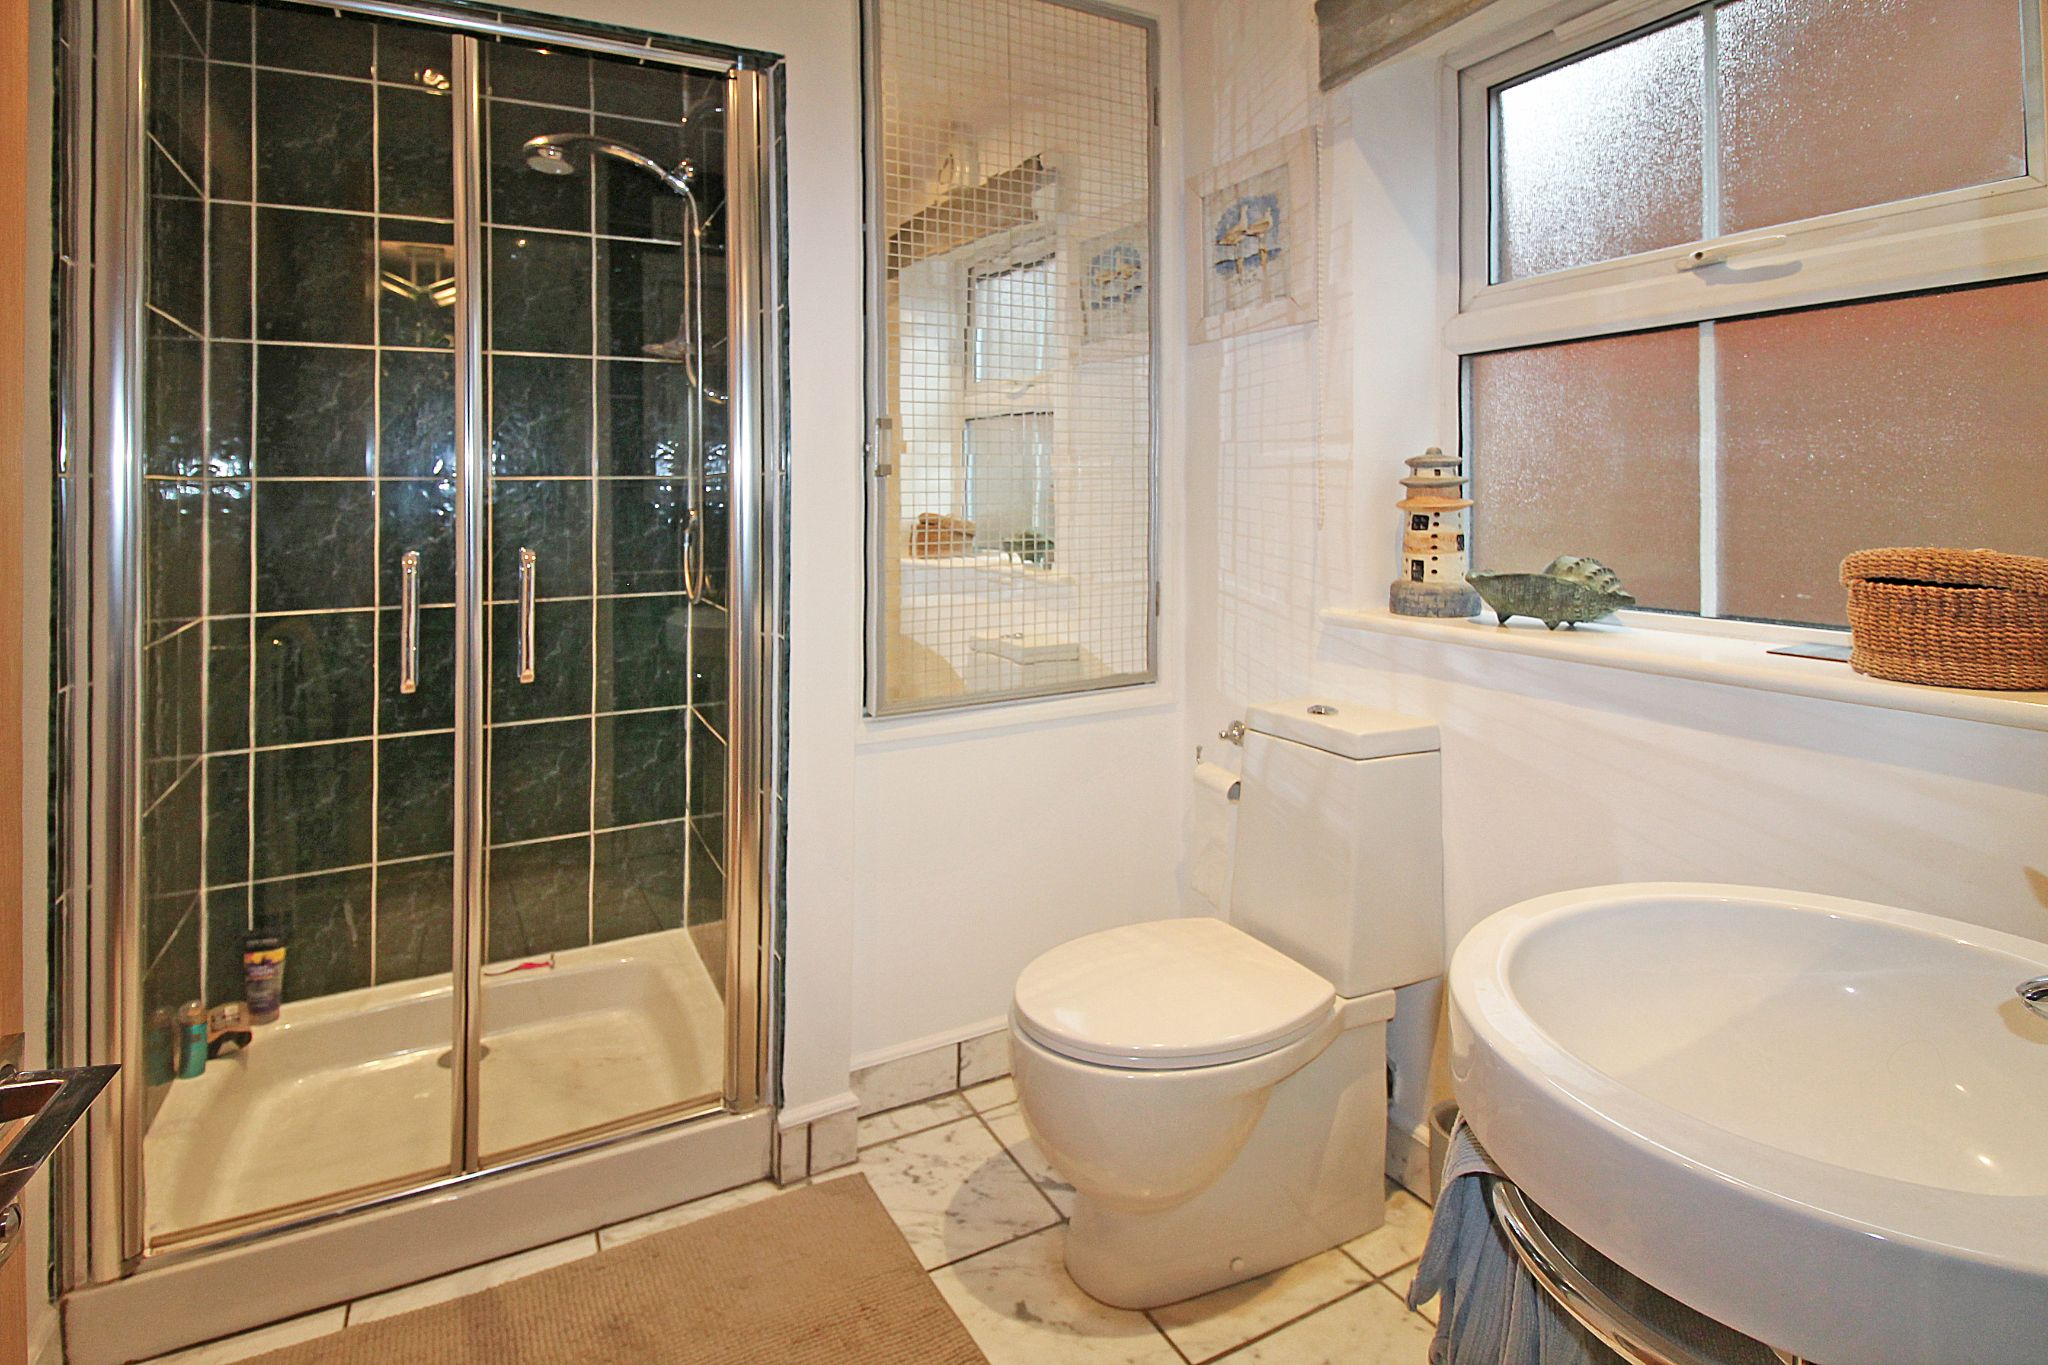 5 bedroom detached house SSTC in Solihull - Photograph 13.